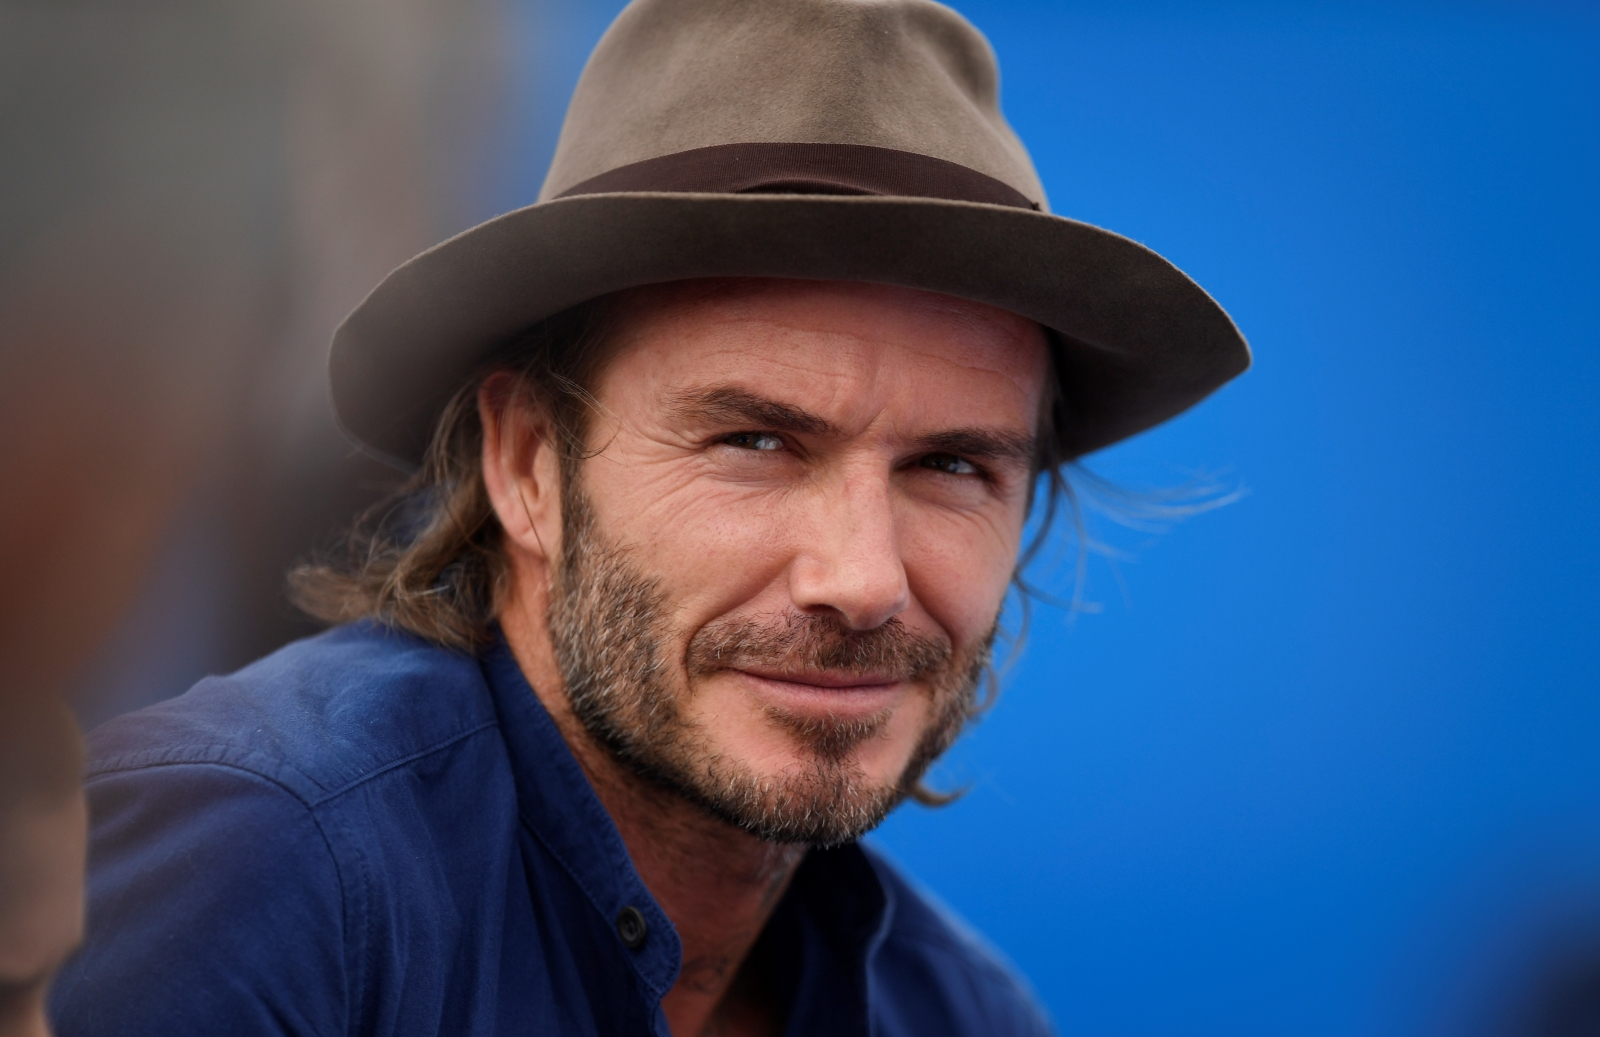 David Beckham defends inappropriate kiss with daughter Harper